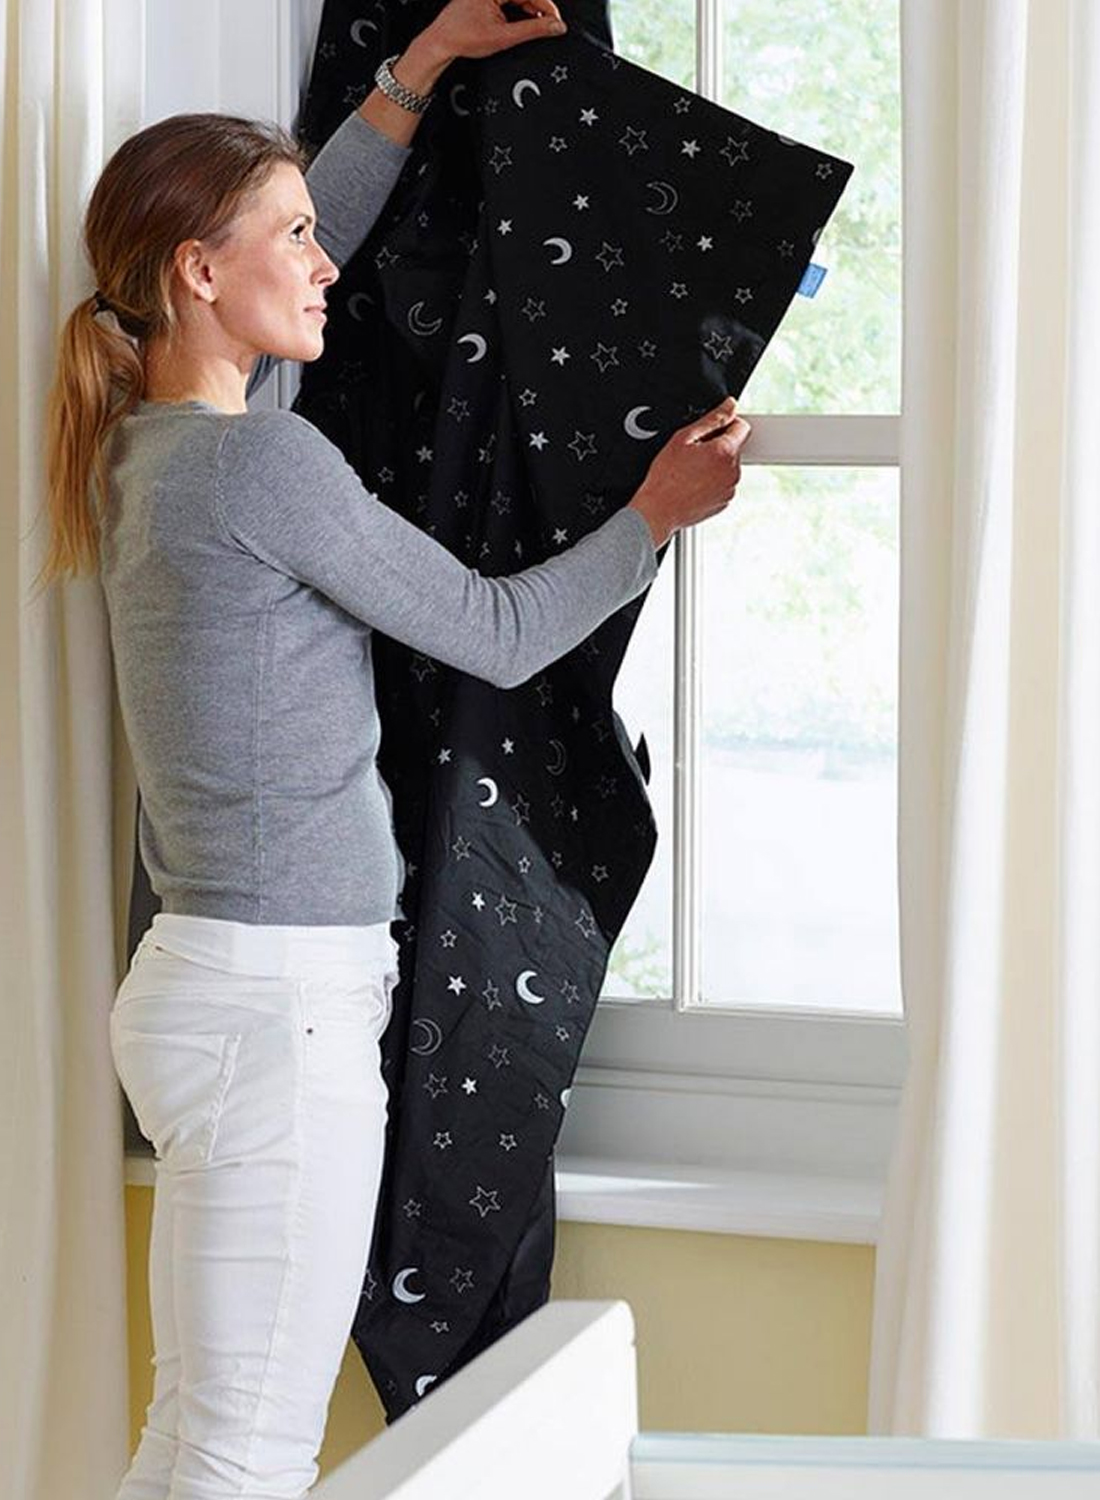 The Gro Anywhere Blind